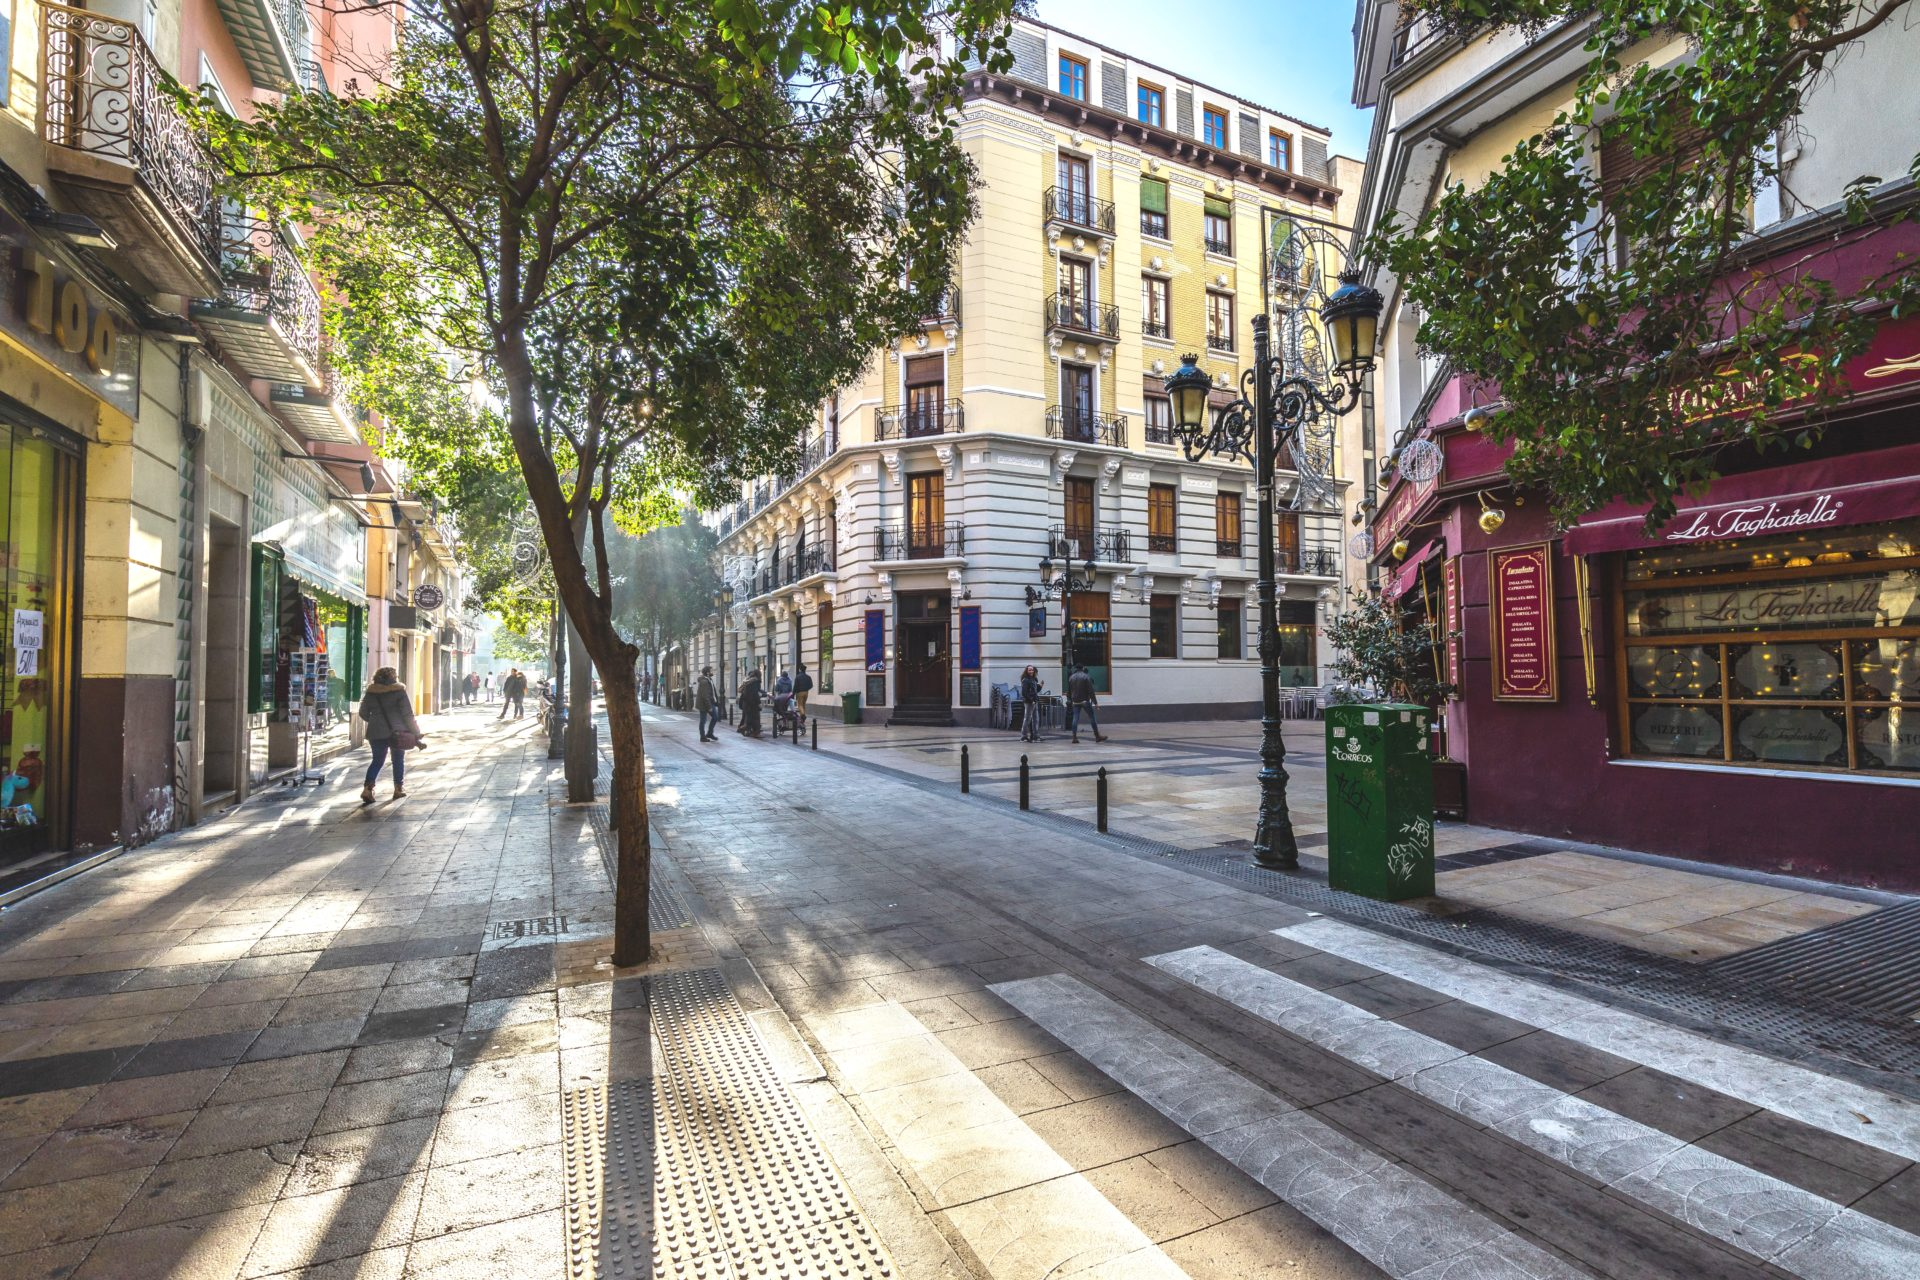 Attractive apartment buildings and cafes in Zaragoza's old town